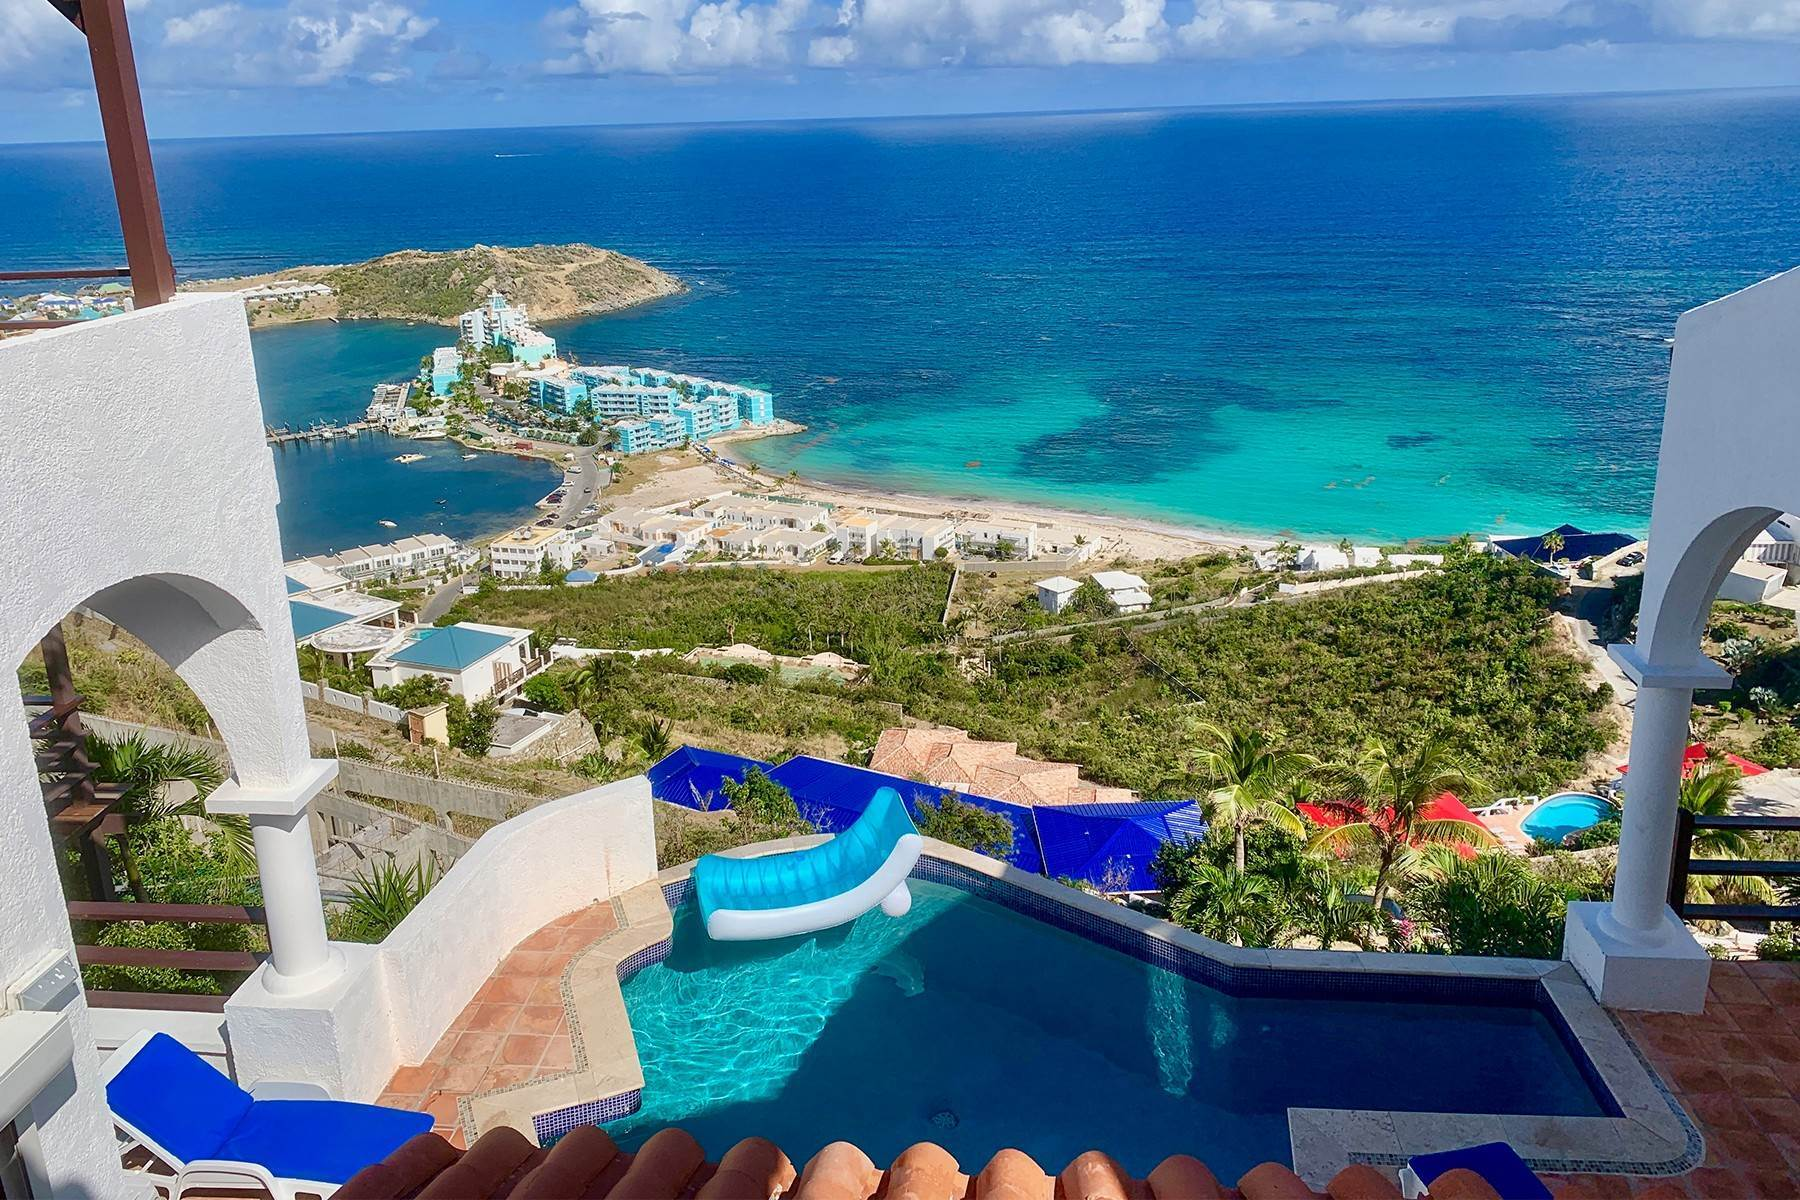 Single Family Homes for Sale at Villa Leones Oyster Pond, St. Maarten